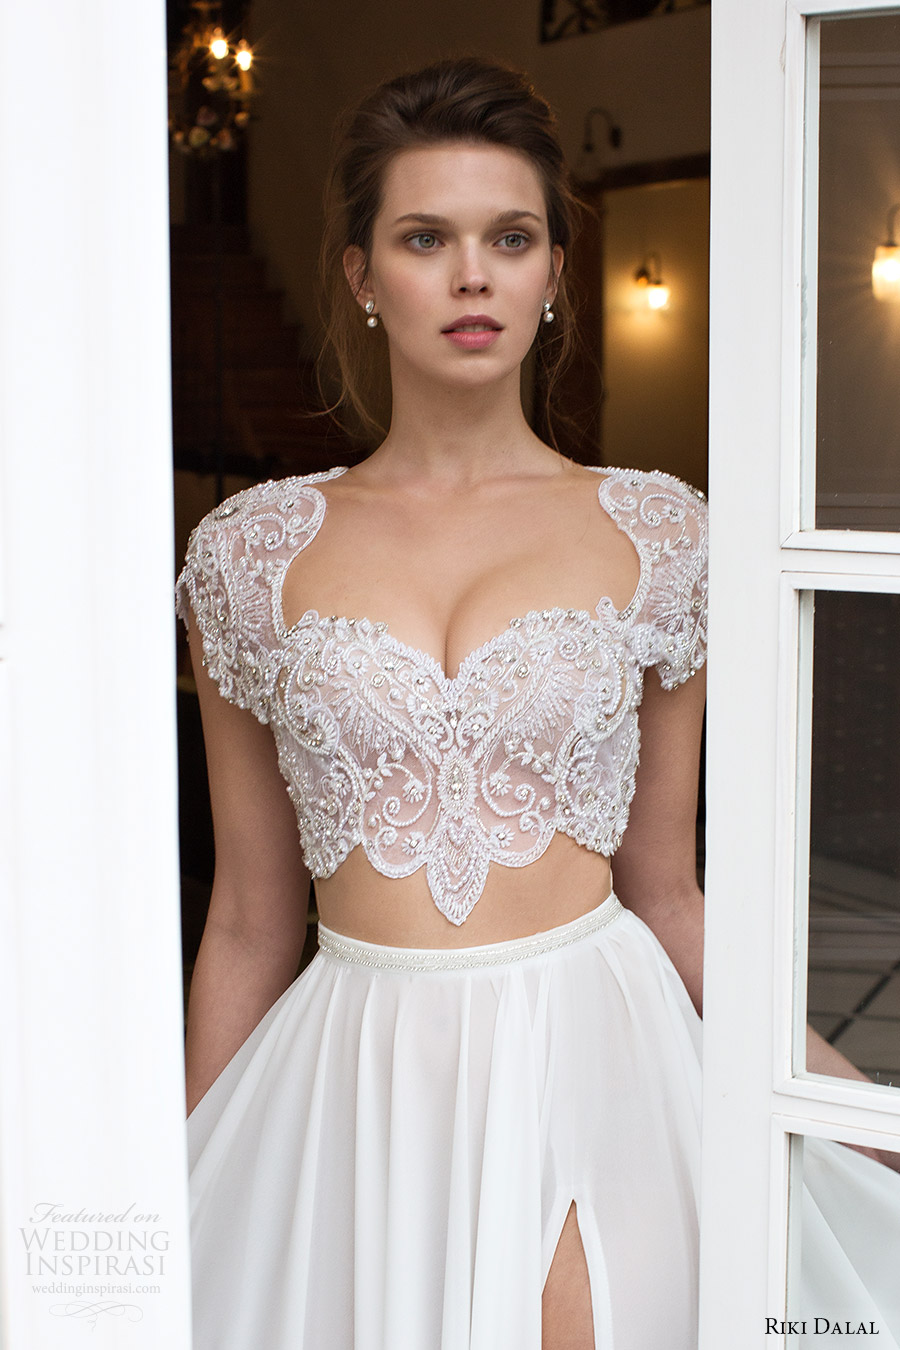 riki dalal bridal 2016 cap sleeves illusion crop top heavily embellished bodice a line wedding dress (1811) zv slit skirt mv edgy romantic